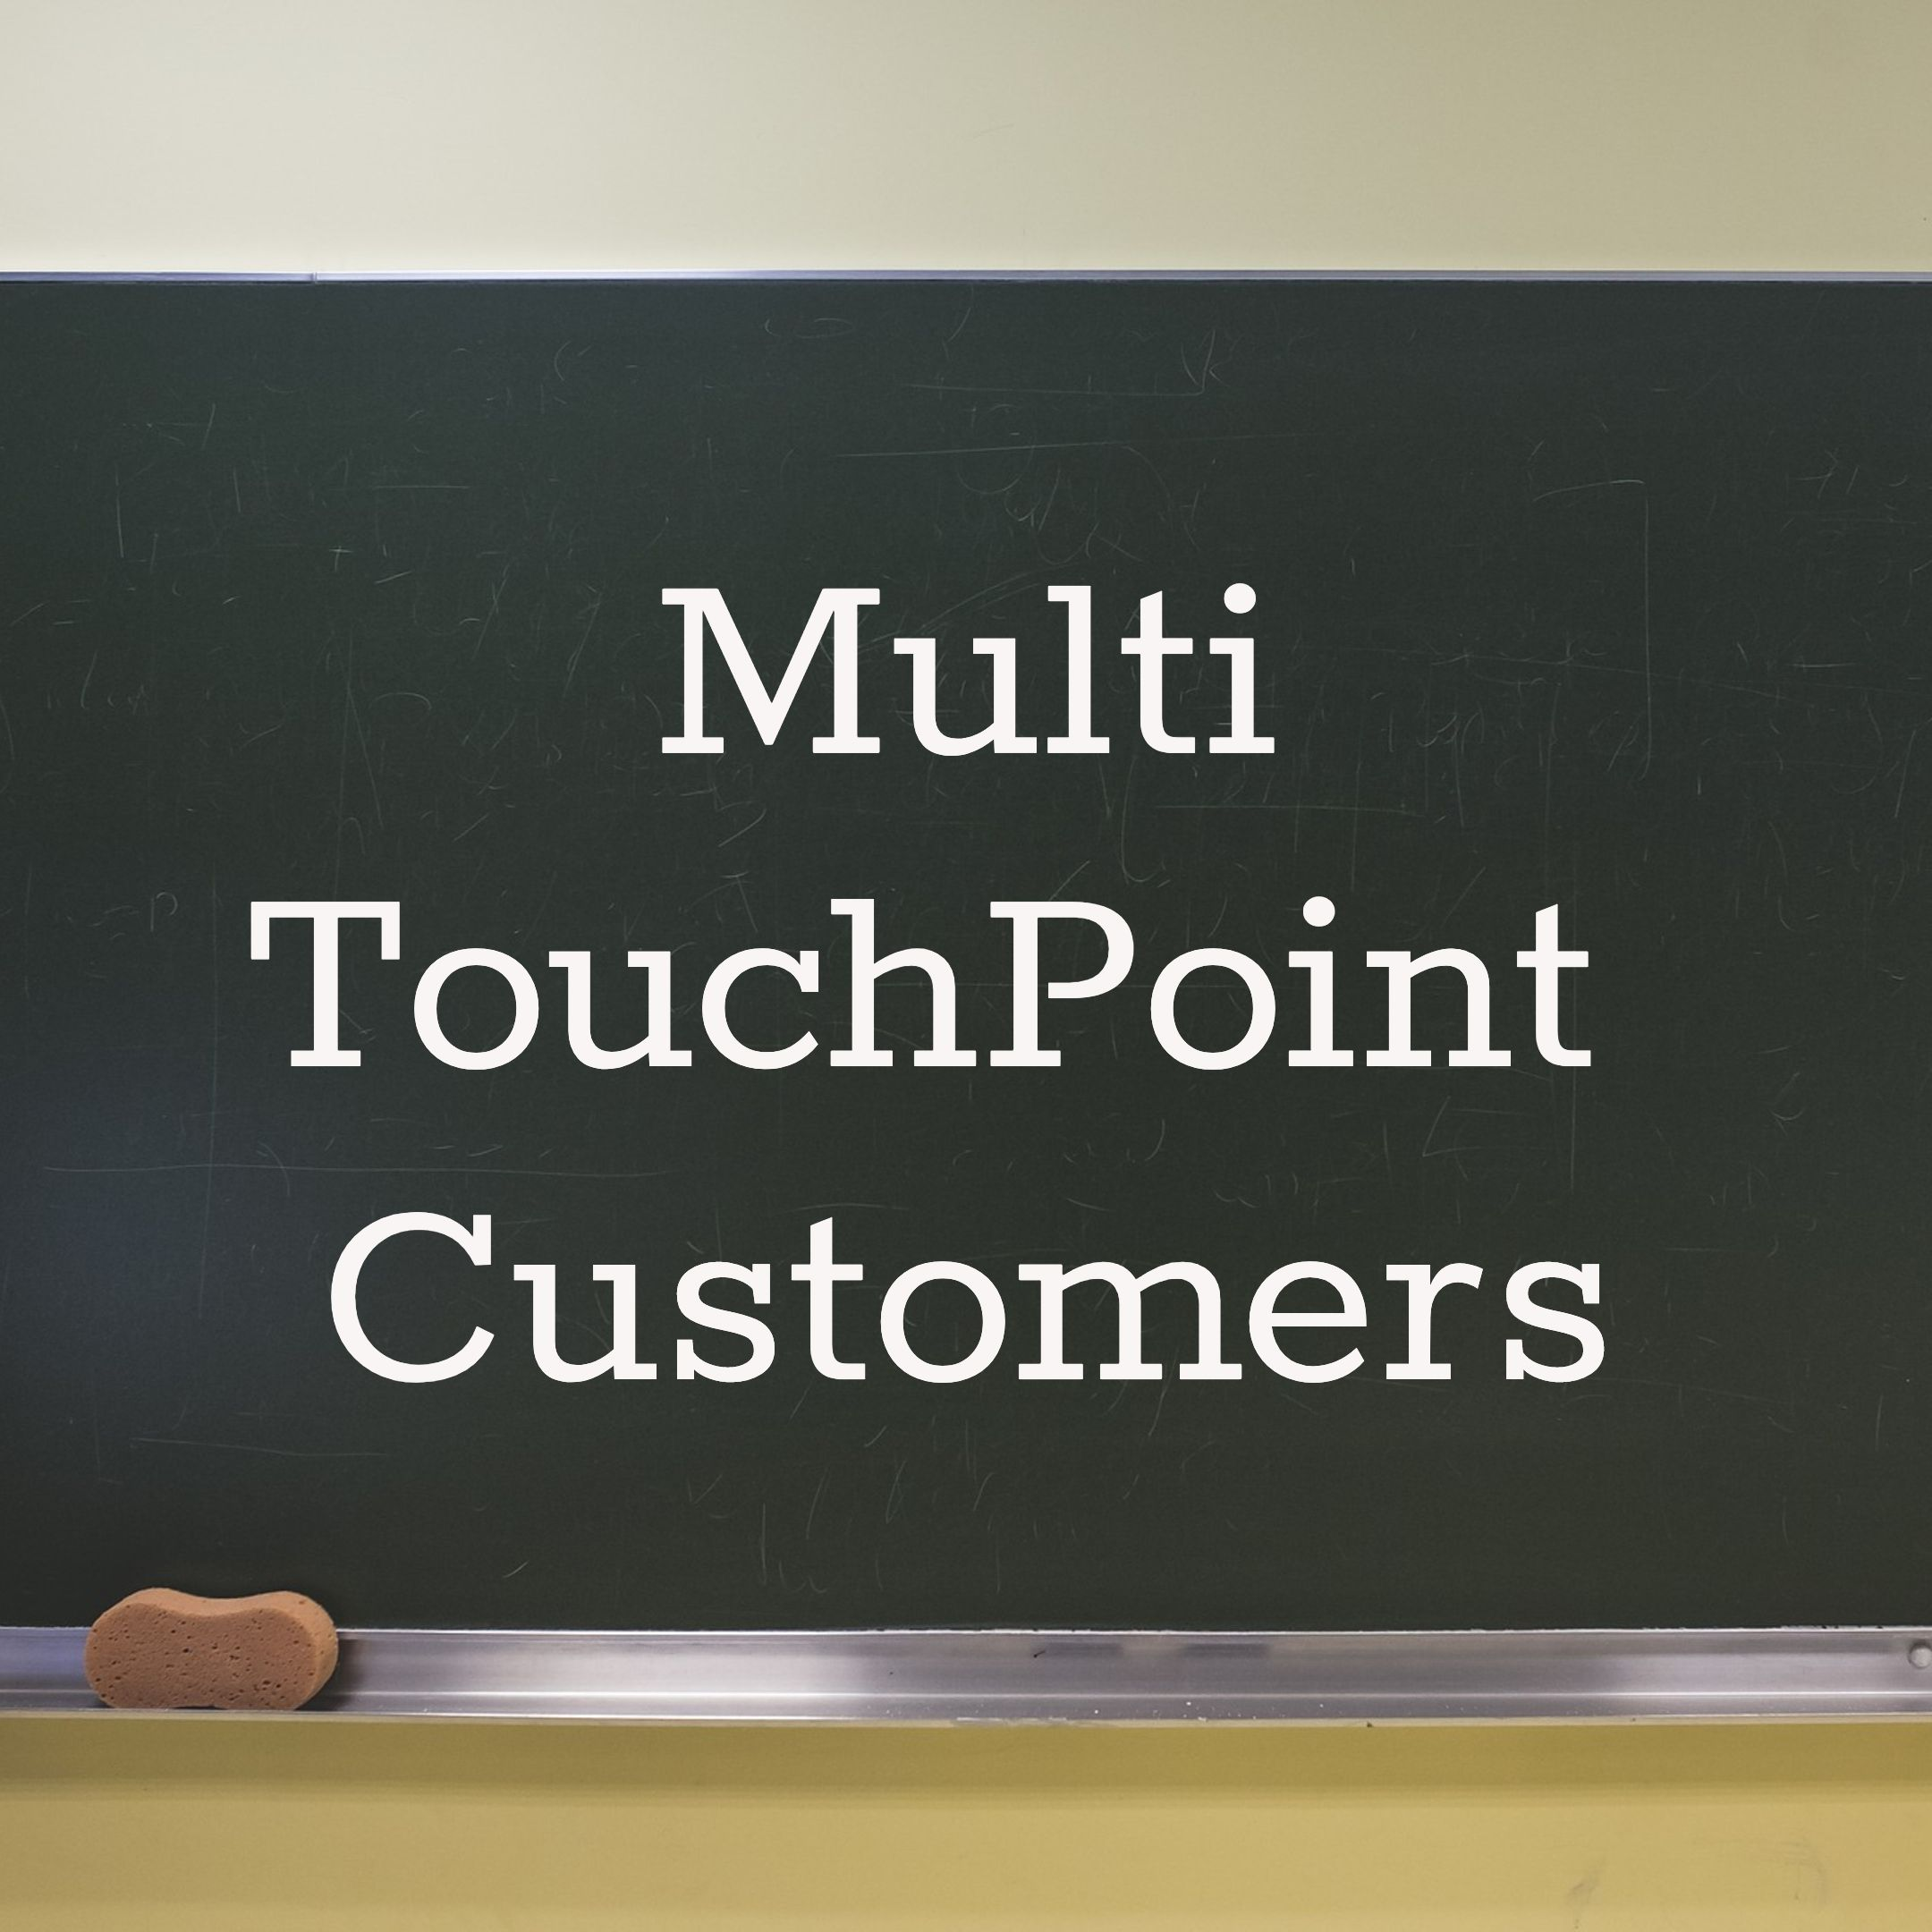 Mutli Touchpoint Customers